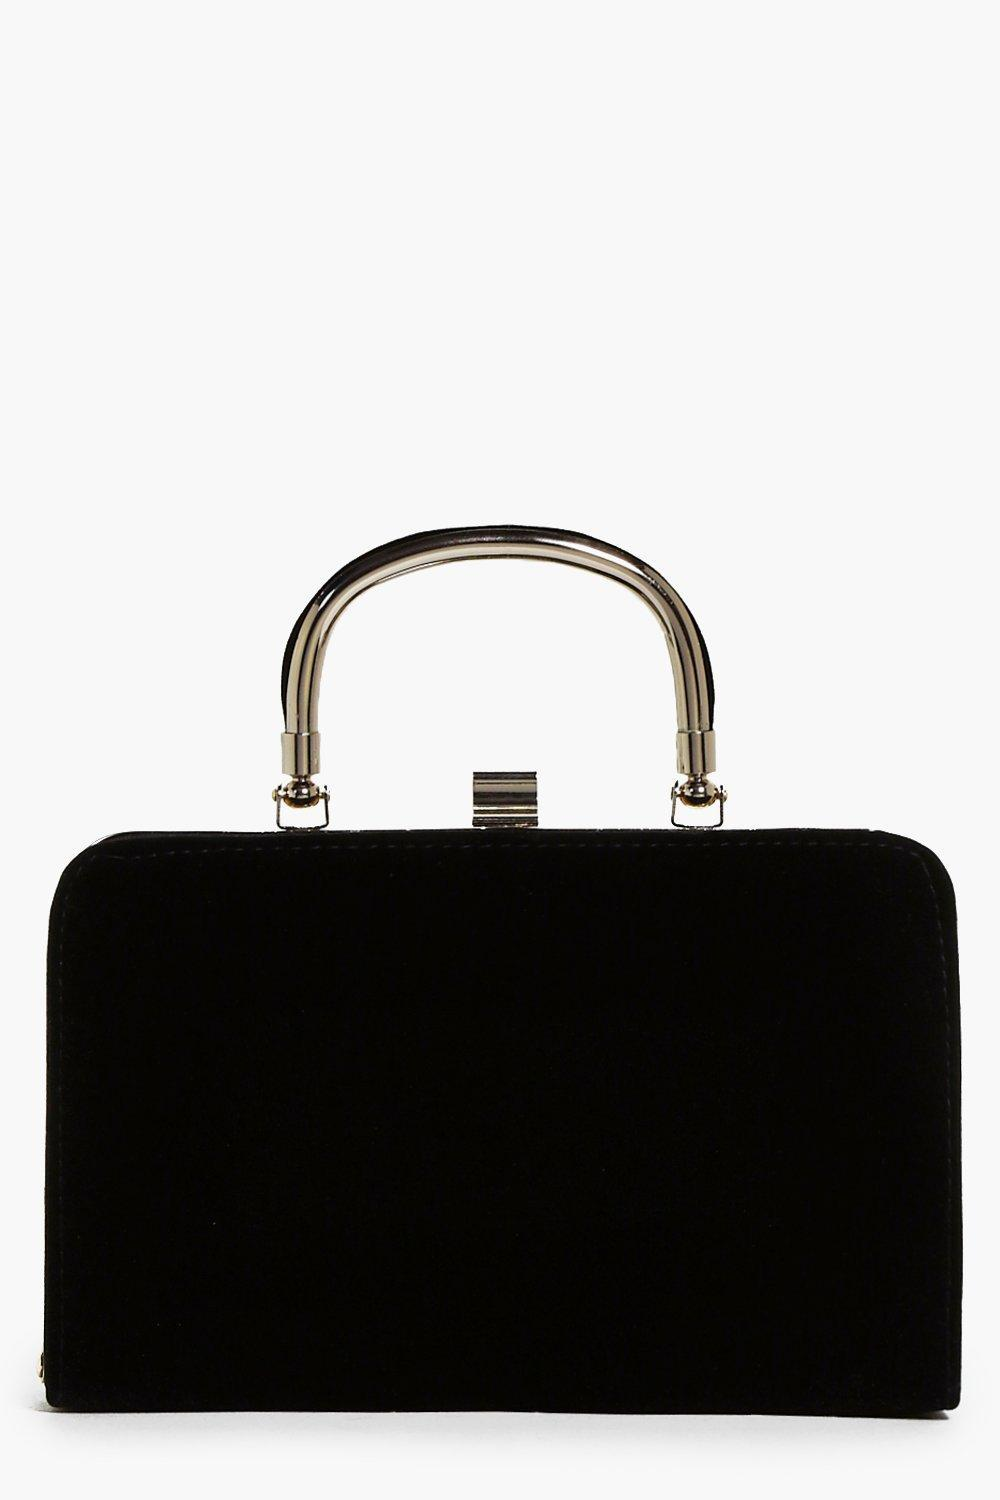 Handle Detail Velvet Box Clutch Black - predominant colour: black; occasions: evening, occasion; type of pattern: light; style: clutch; length: hand carry; size: small; material: velvet; pattern: plain; finish: plain; season: a/w 2016; wardrobe: event; trends: velvet